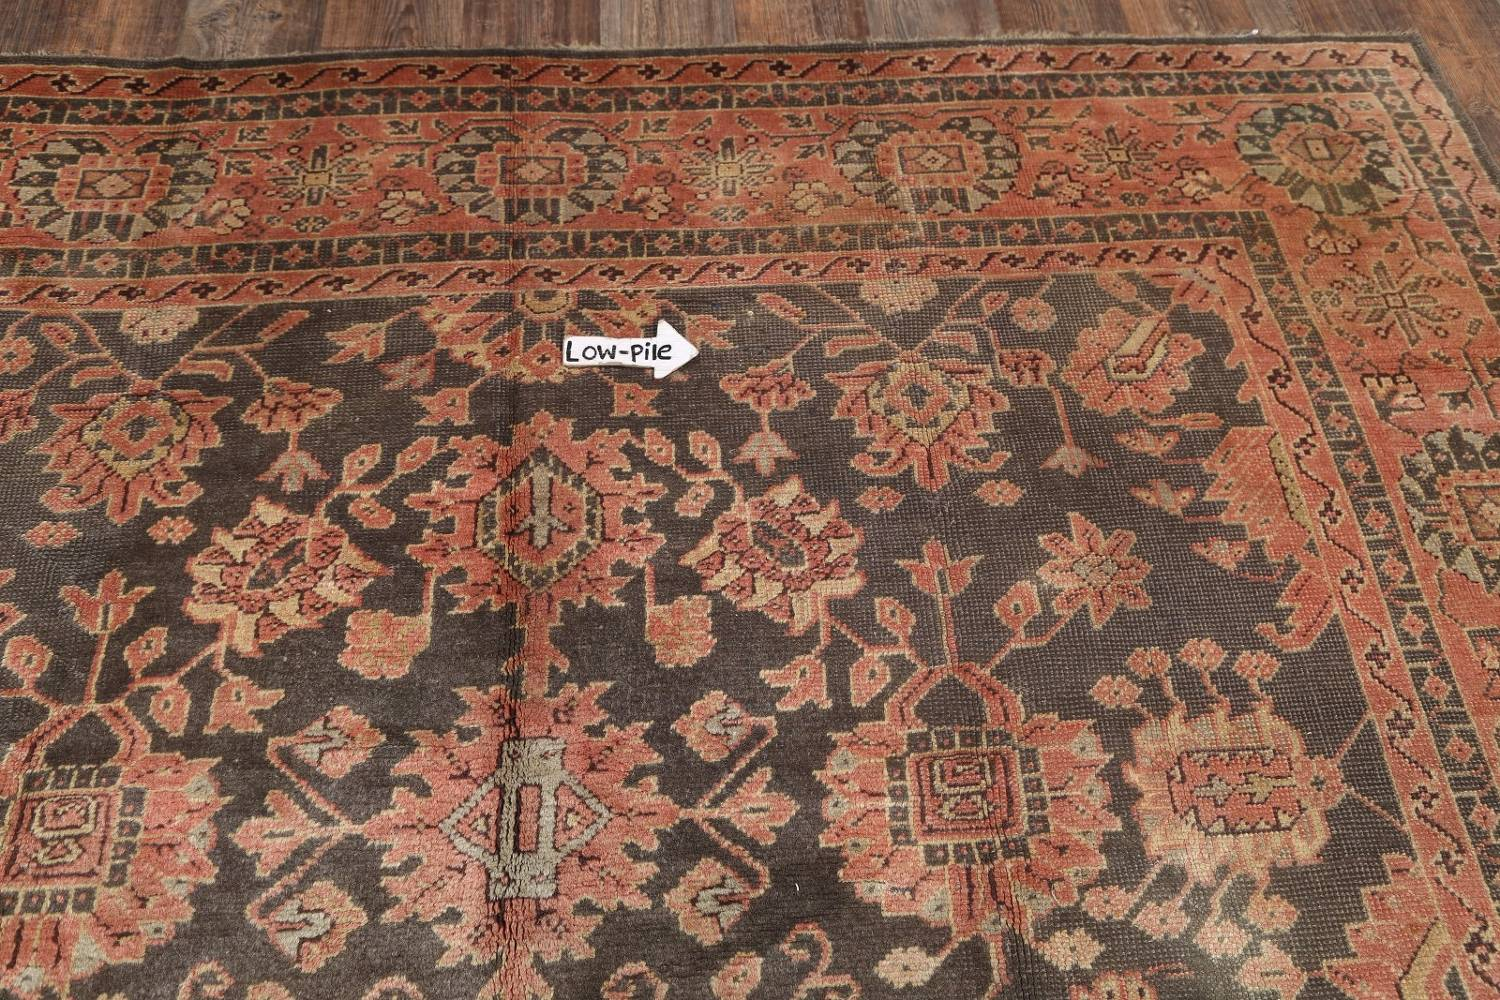 Fossil Black All-Over Muted Antique 9x11 Oushak Turkish Oriental Area Rug image 10